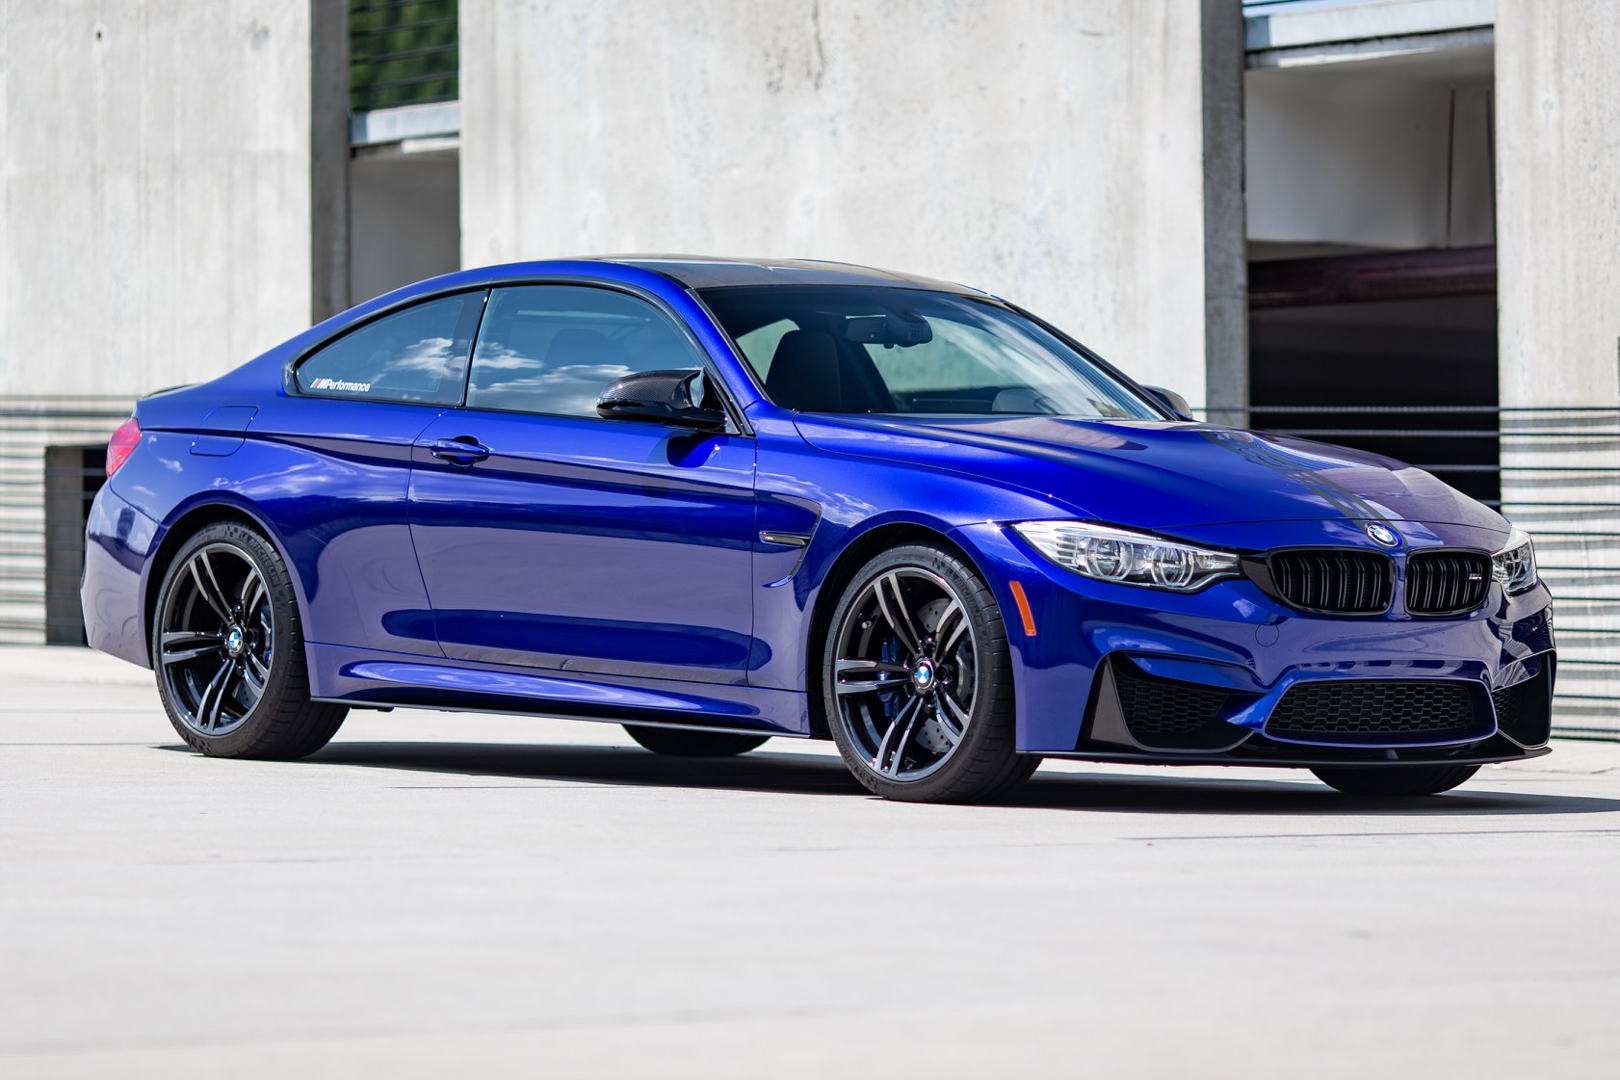 BMW M4 San Marino Blue M Performance Parts 3 of 35